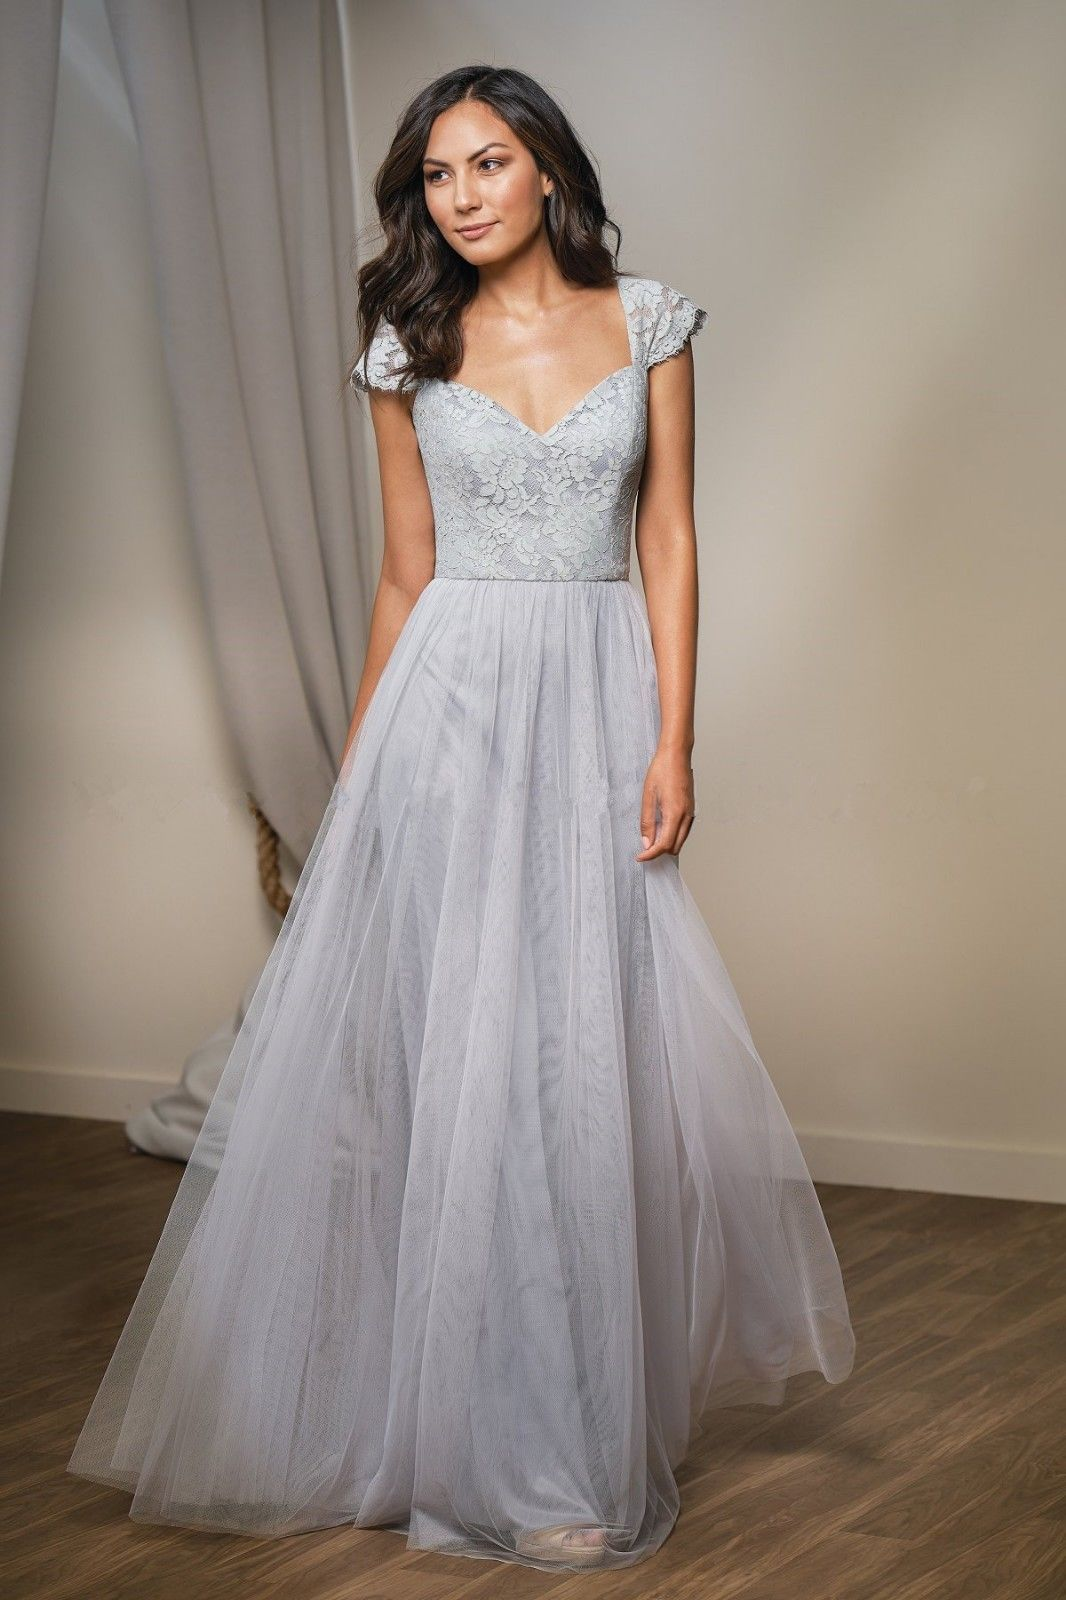 Cap sleeve tulle bridesmaid evening formal dresses lace wedding